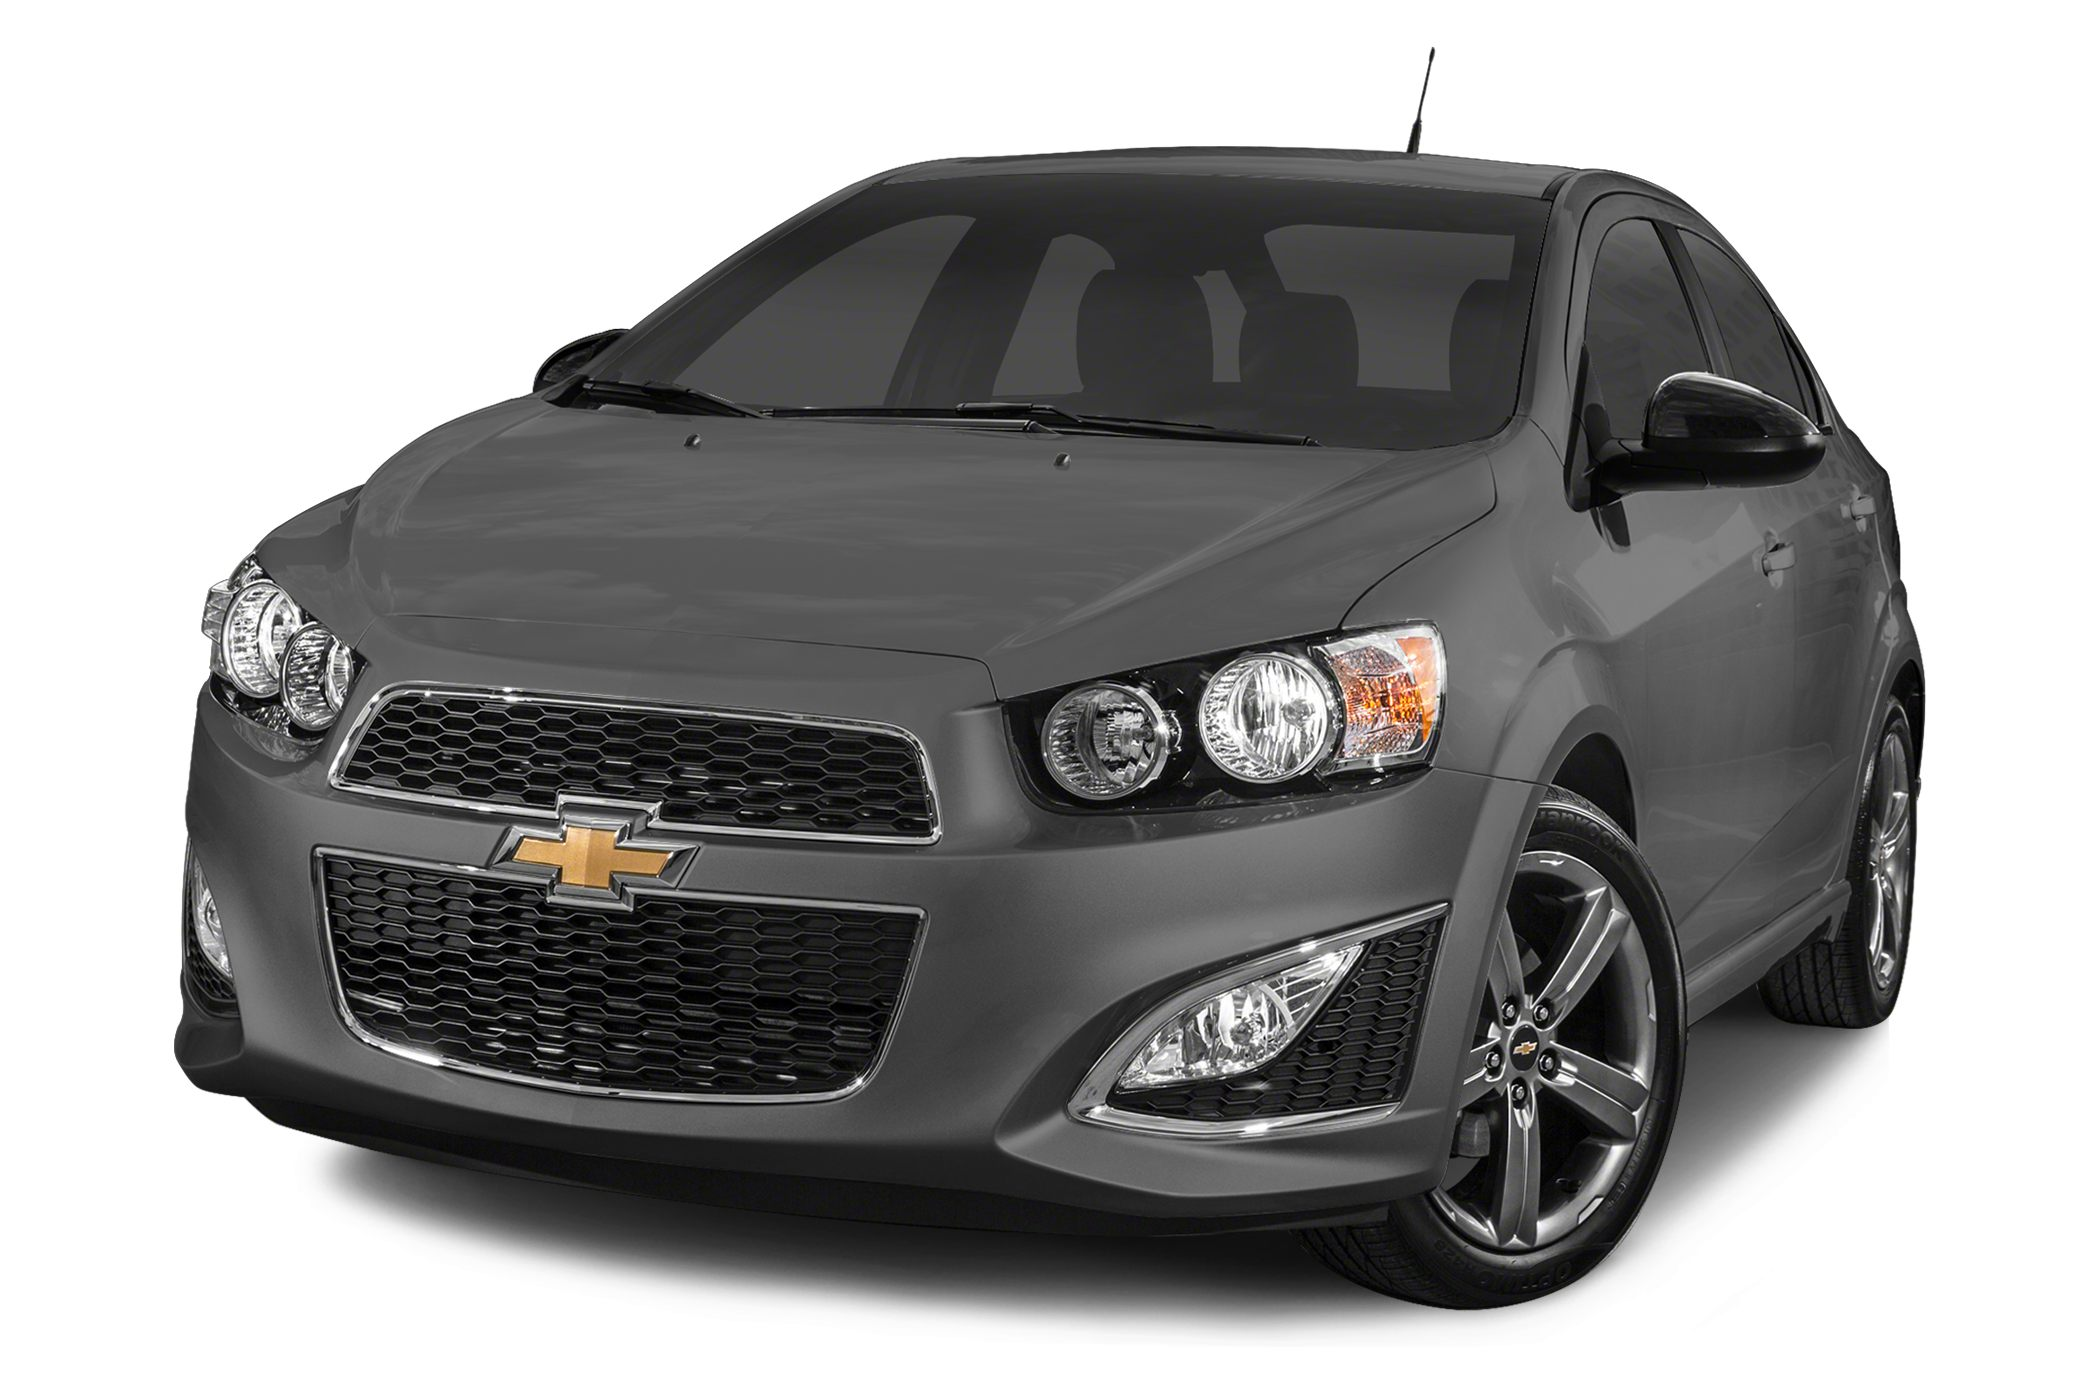 2015 Chevrolet Sonic RS Sedan for sale in Dilley for $21,441 with 1 miles